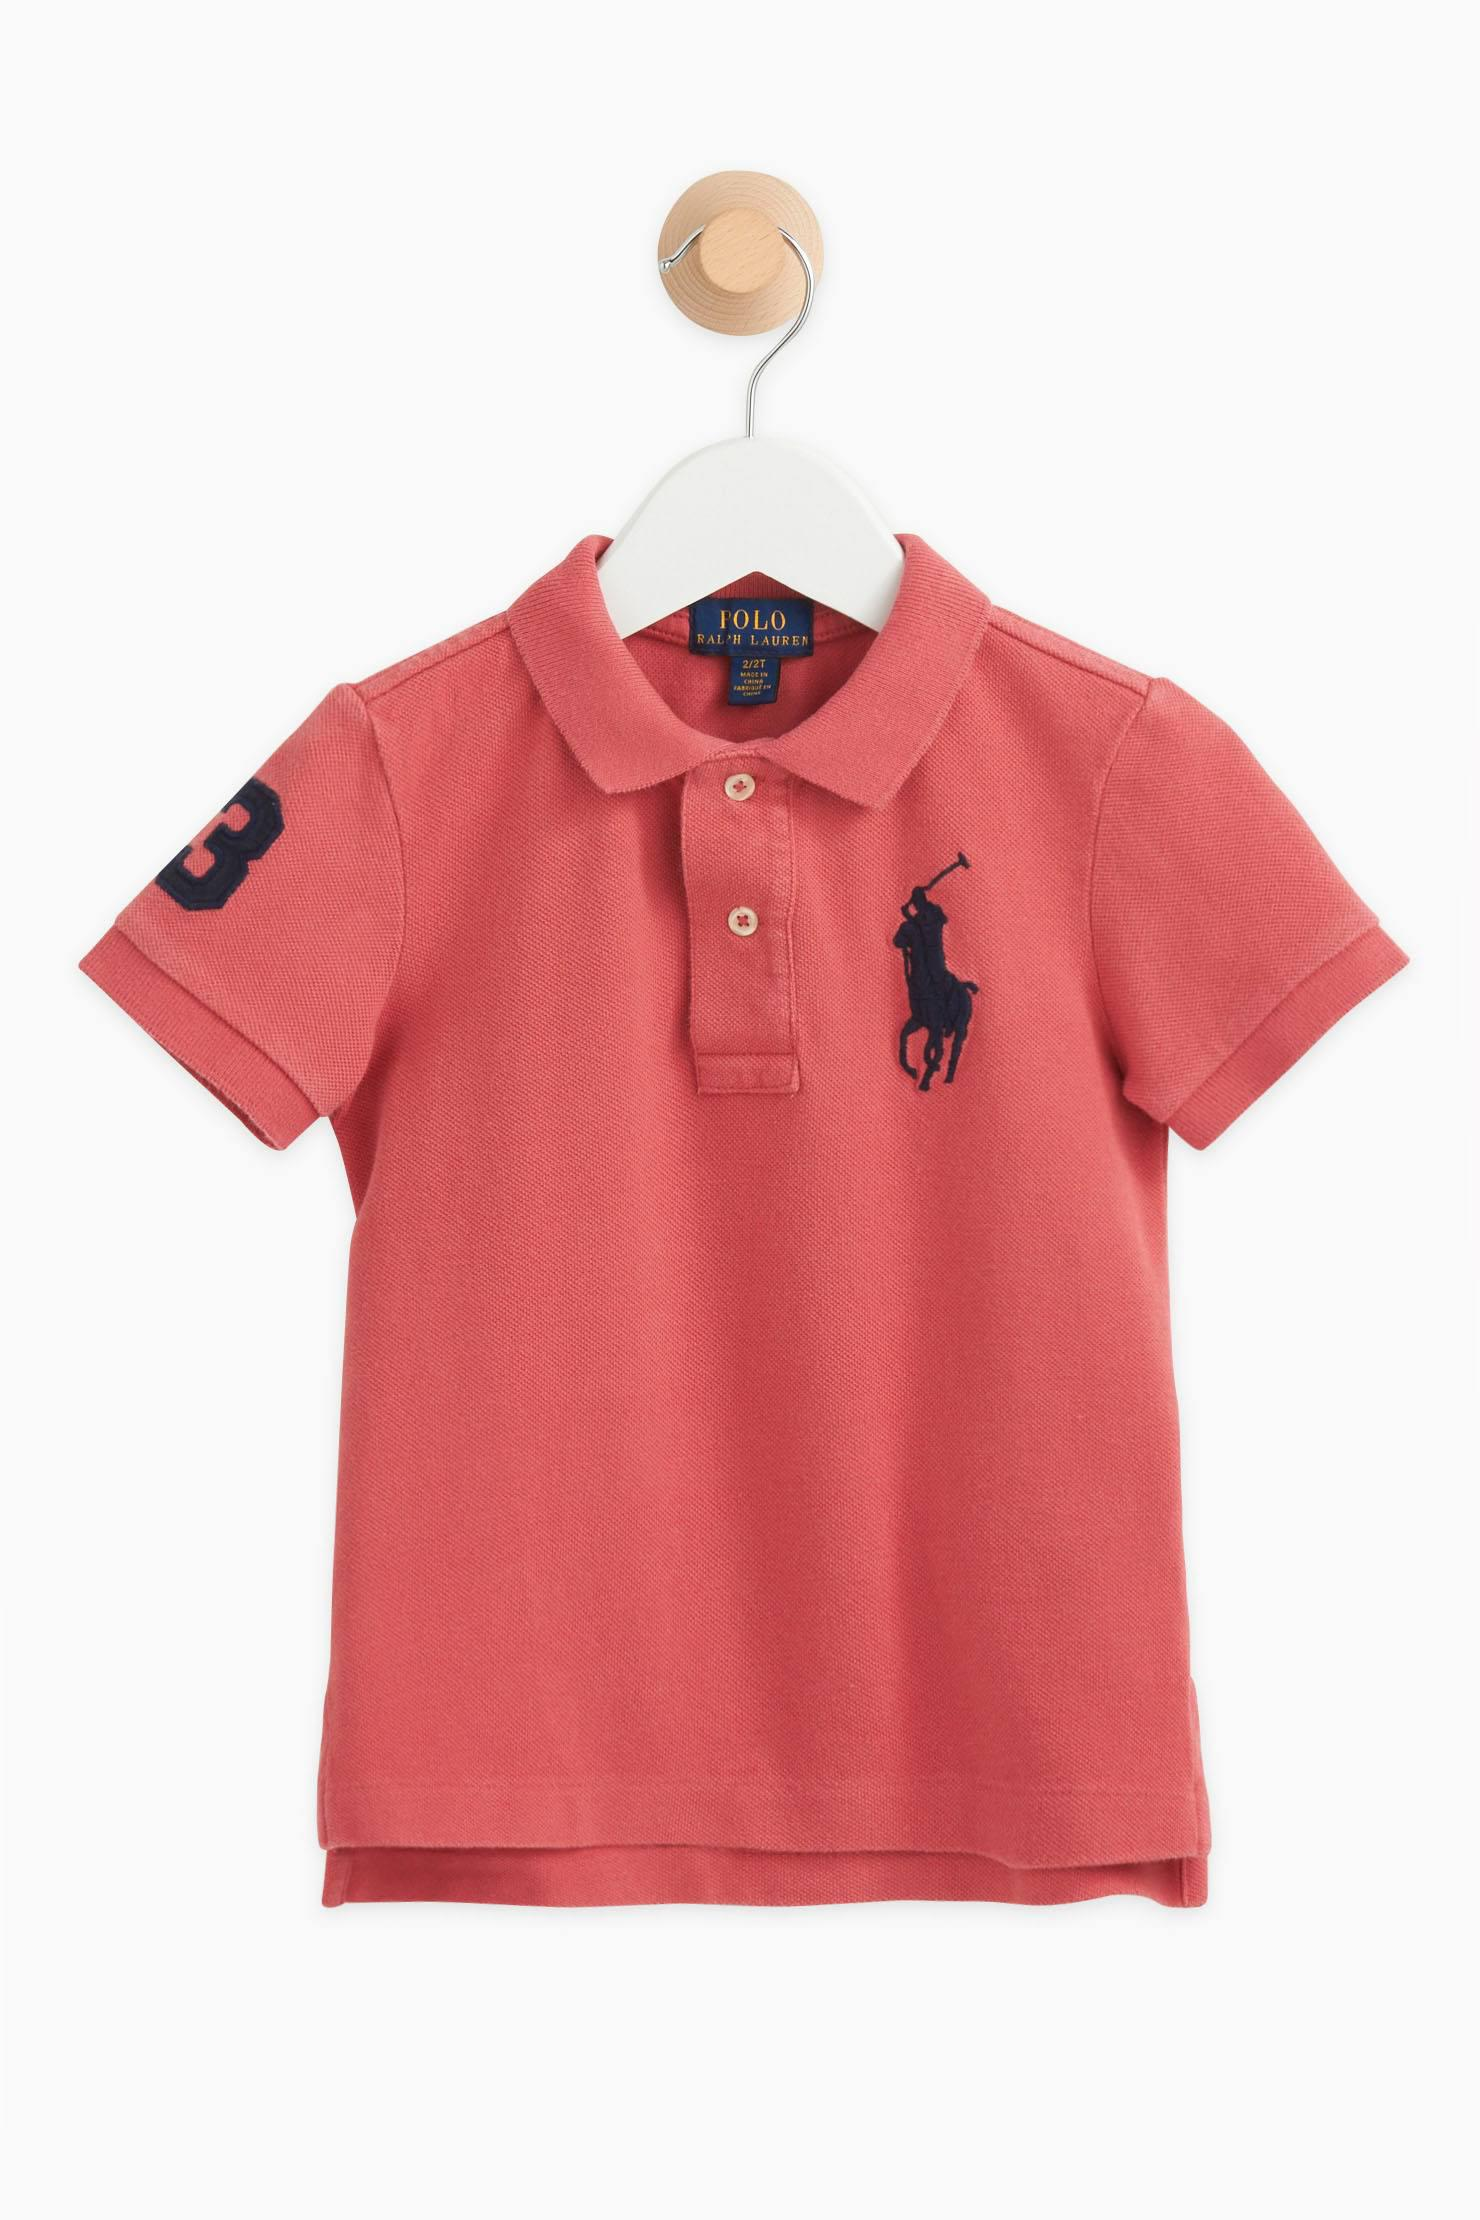 polo ralph lauren tshirt amp polo shirt in red for men lyst